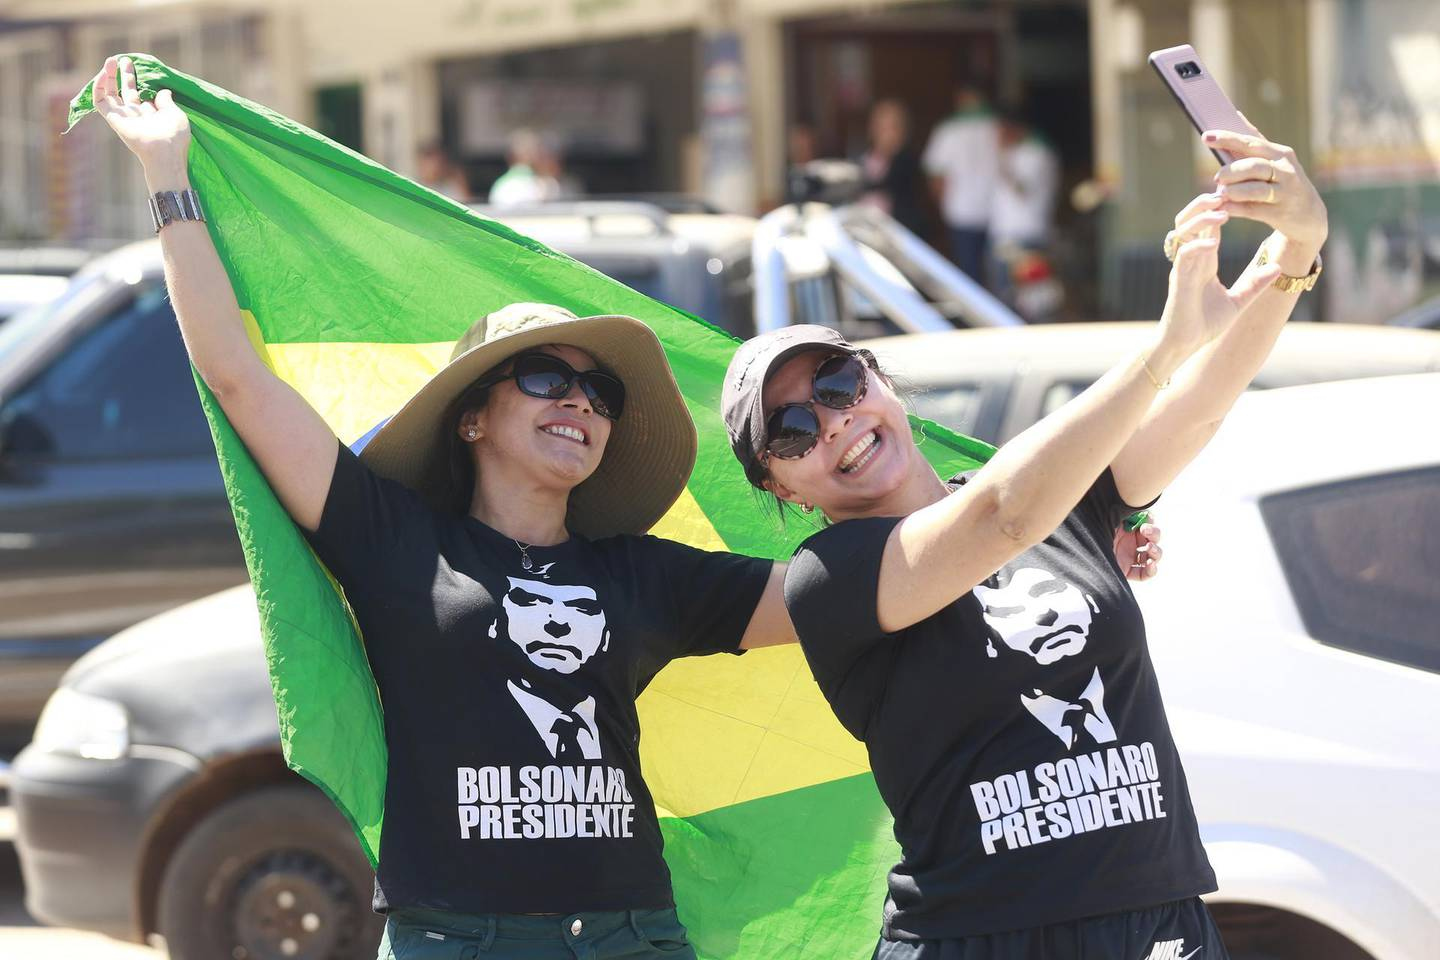 epa06999650 Supporters of candidate to the presidency of Brazil for the Liberal Social Party (PSL), Jair Bolsonaro, participate in a campaign event in Brasilia, Brazil, 05 September 2018. The Presidential elections will take place in the country in October.  EPA/Joédson Alves